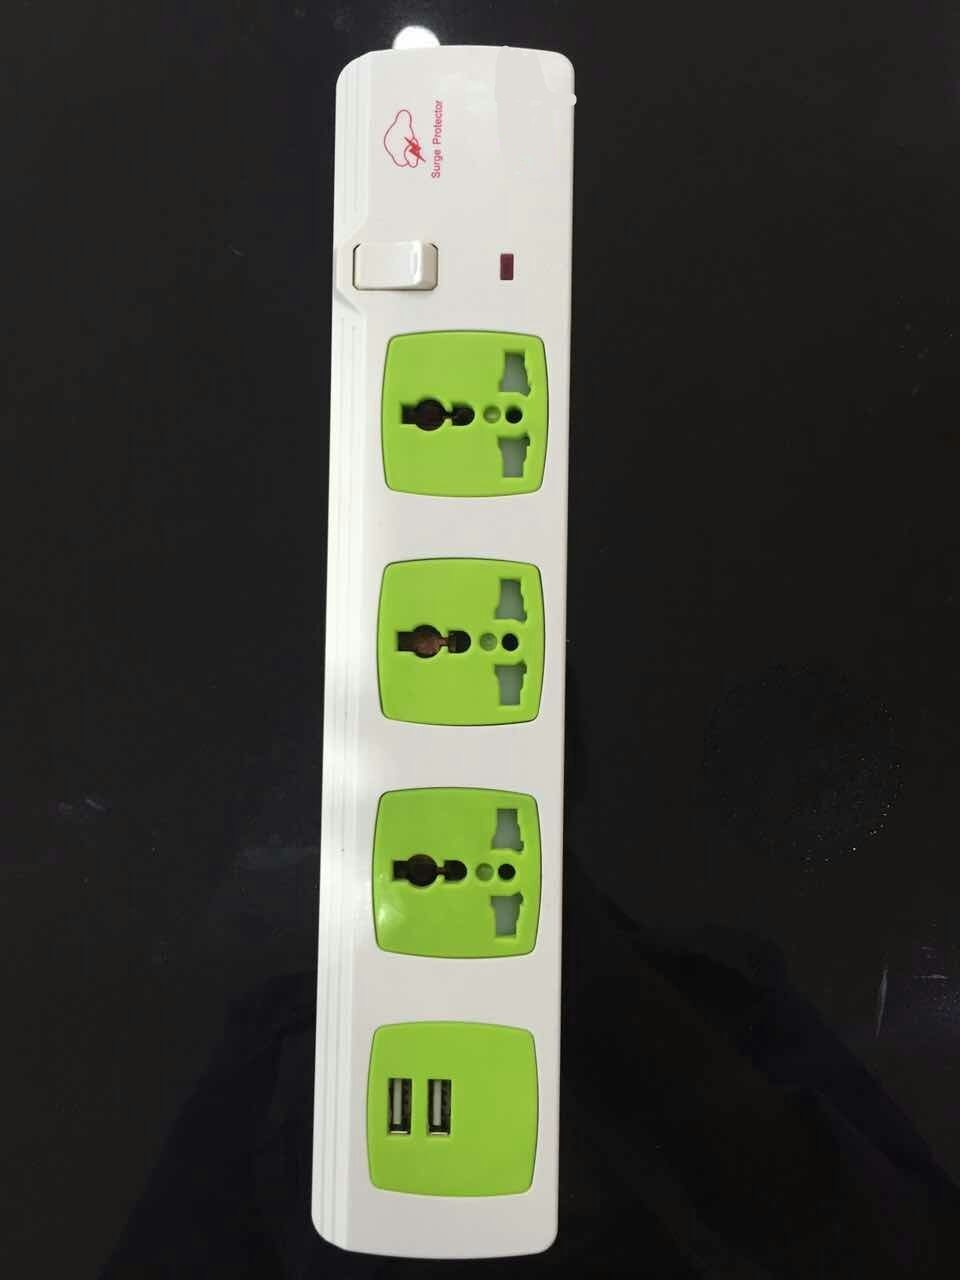 3 Way Universal Power Strip Extension Socket with Dual USB